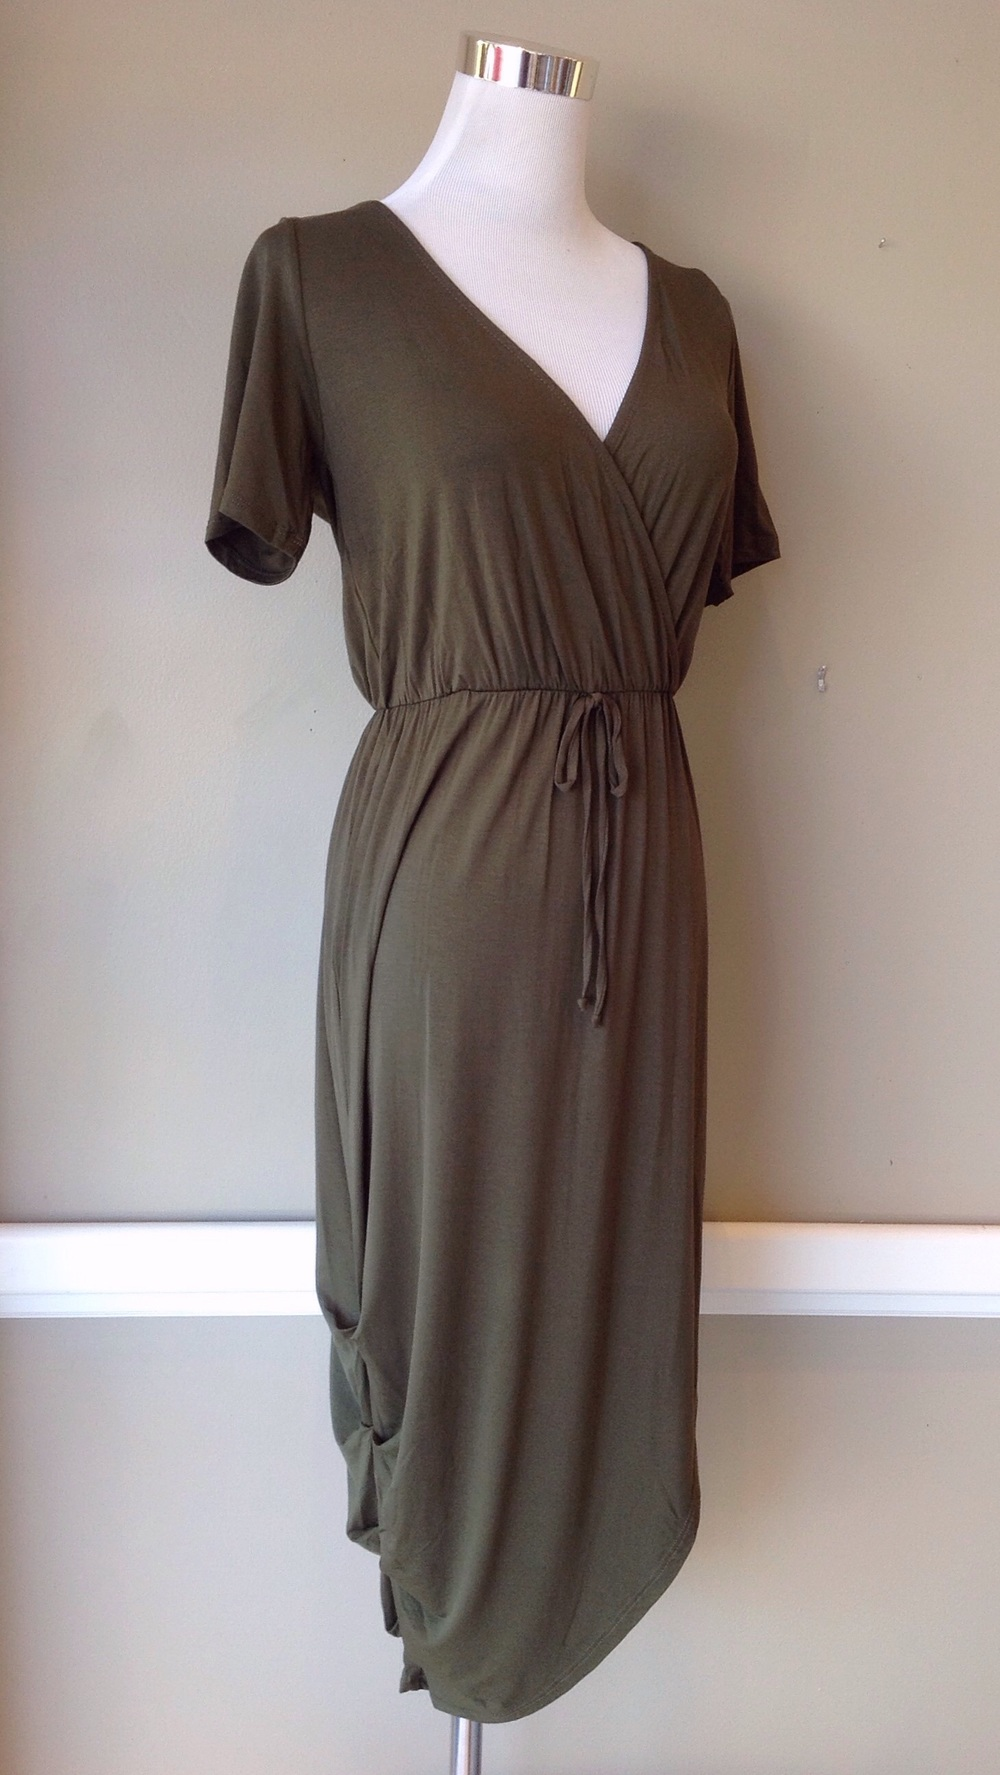 Olive knit dress with drawstring waist and ruched side seam, $42